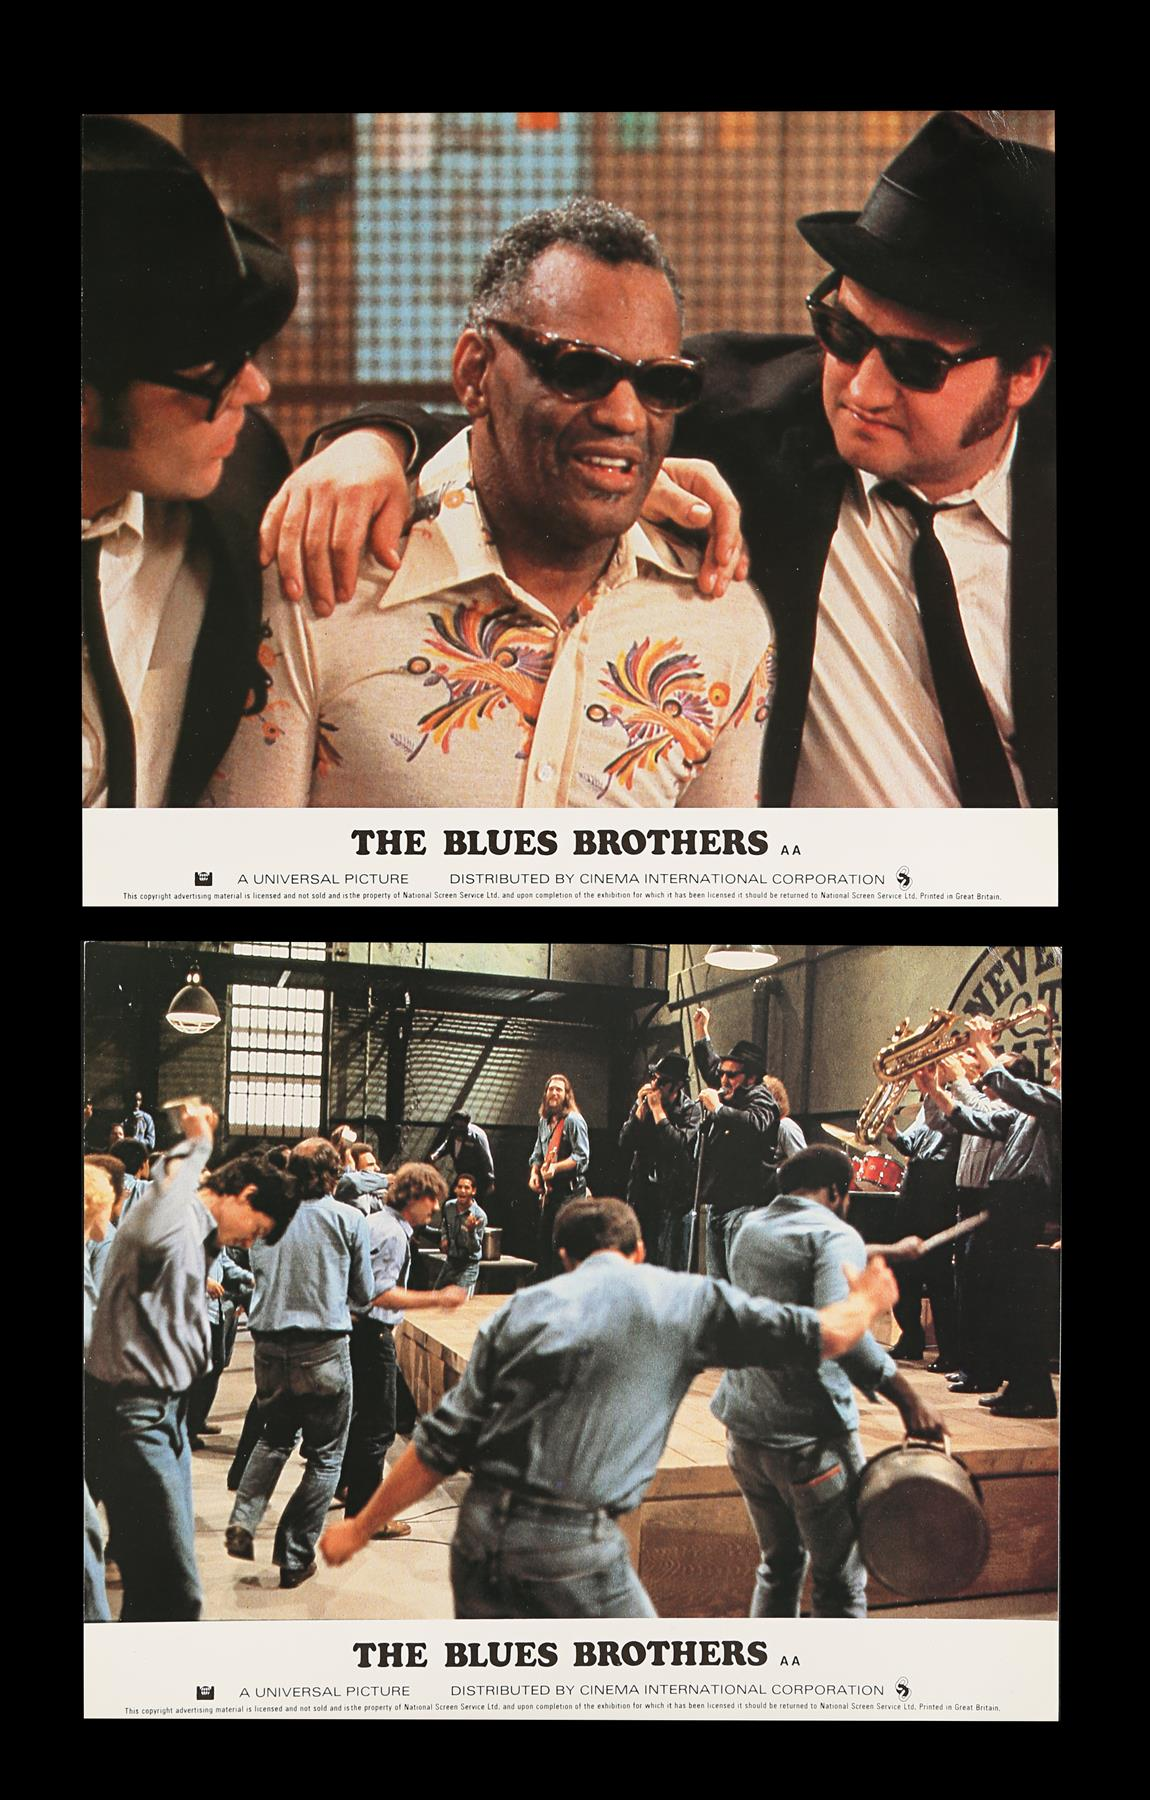 THE BLUES BROTHERS (1980) - Eight British Front of House Lobby Cards, 1980 - Image 5 of 5